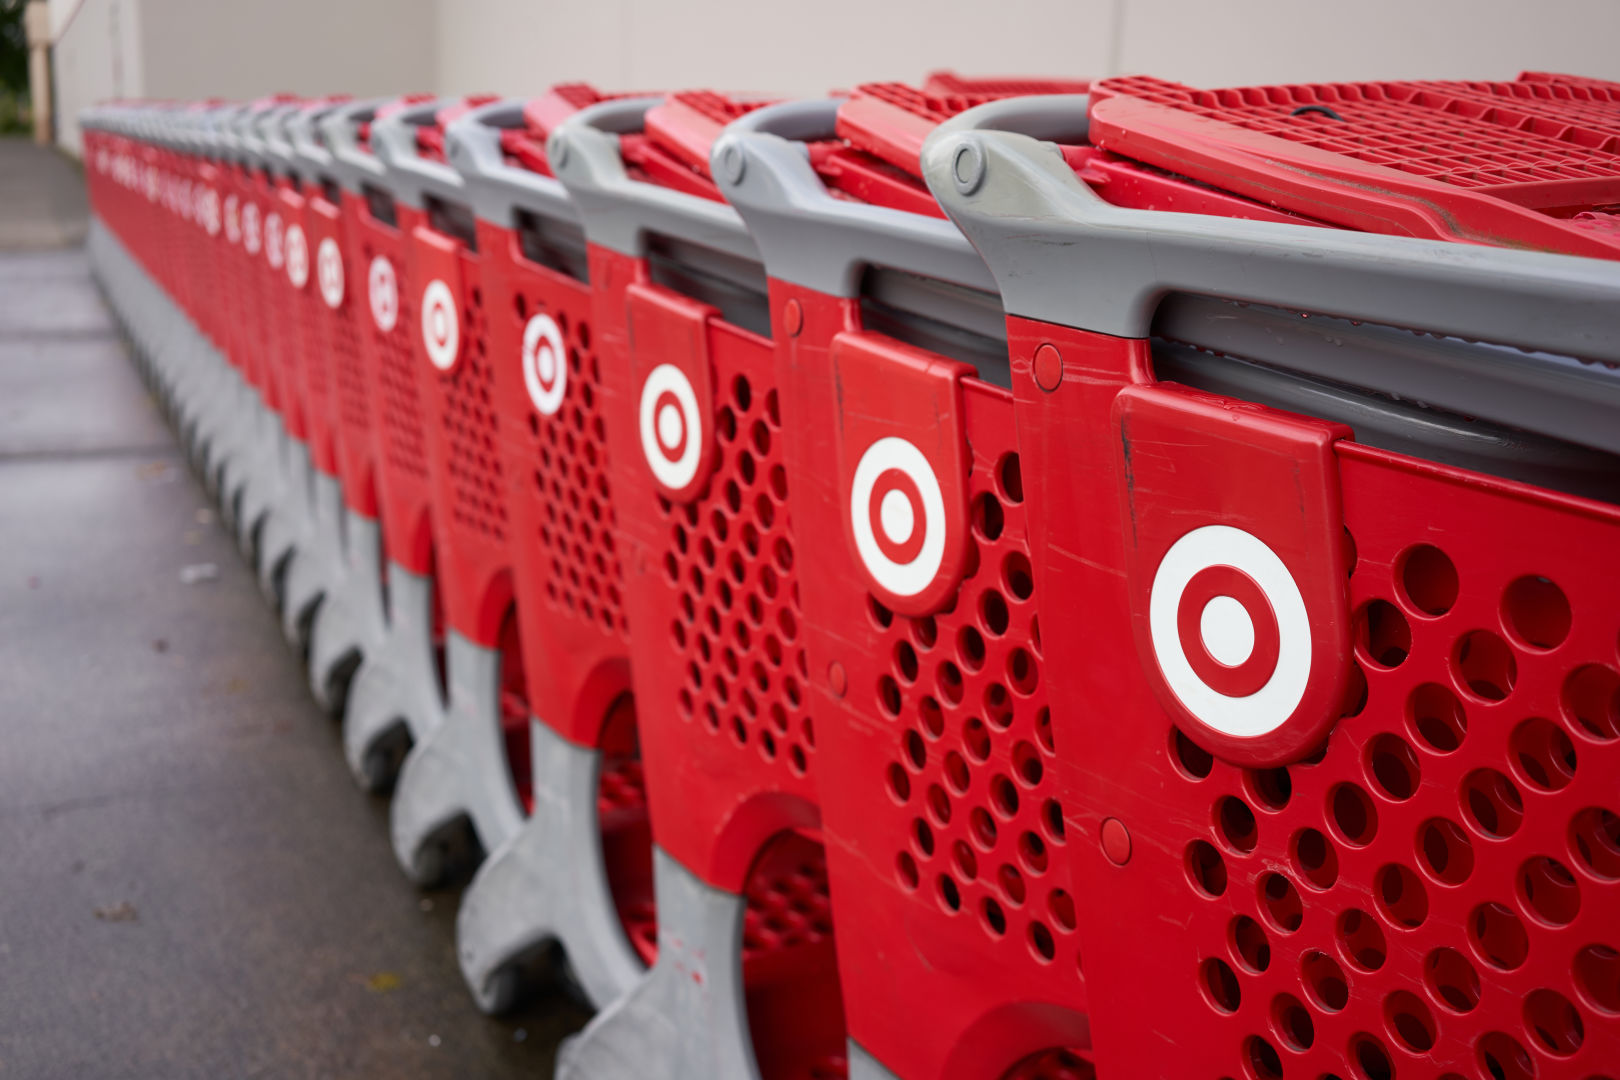 The 10 best deals from Target's Black Friday sale